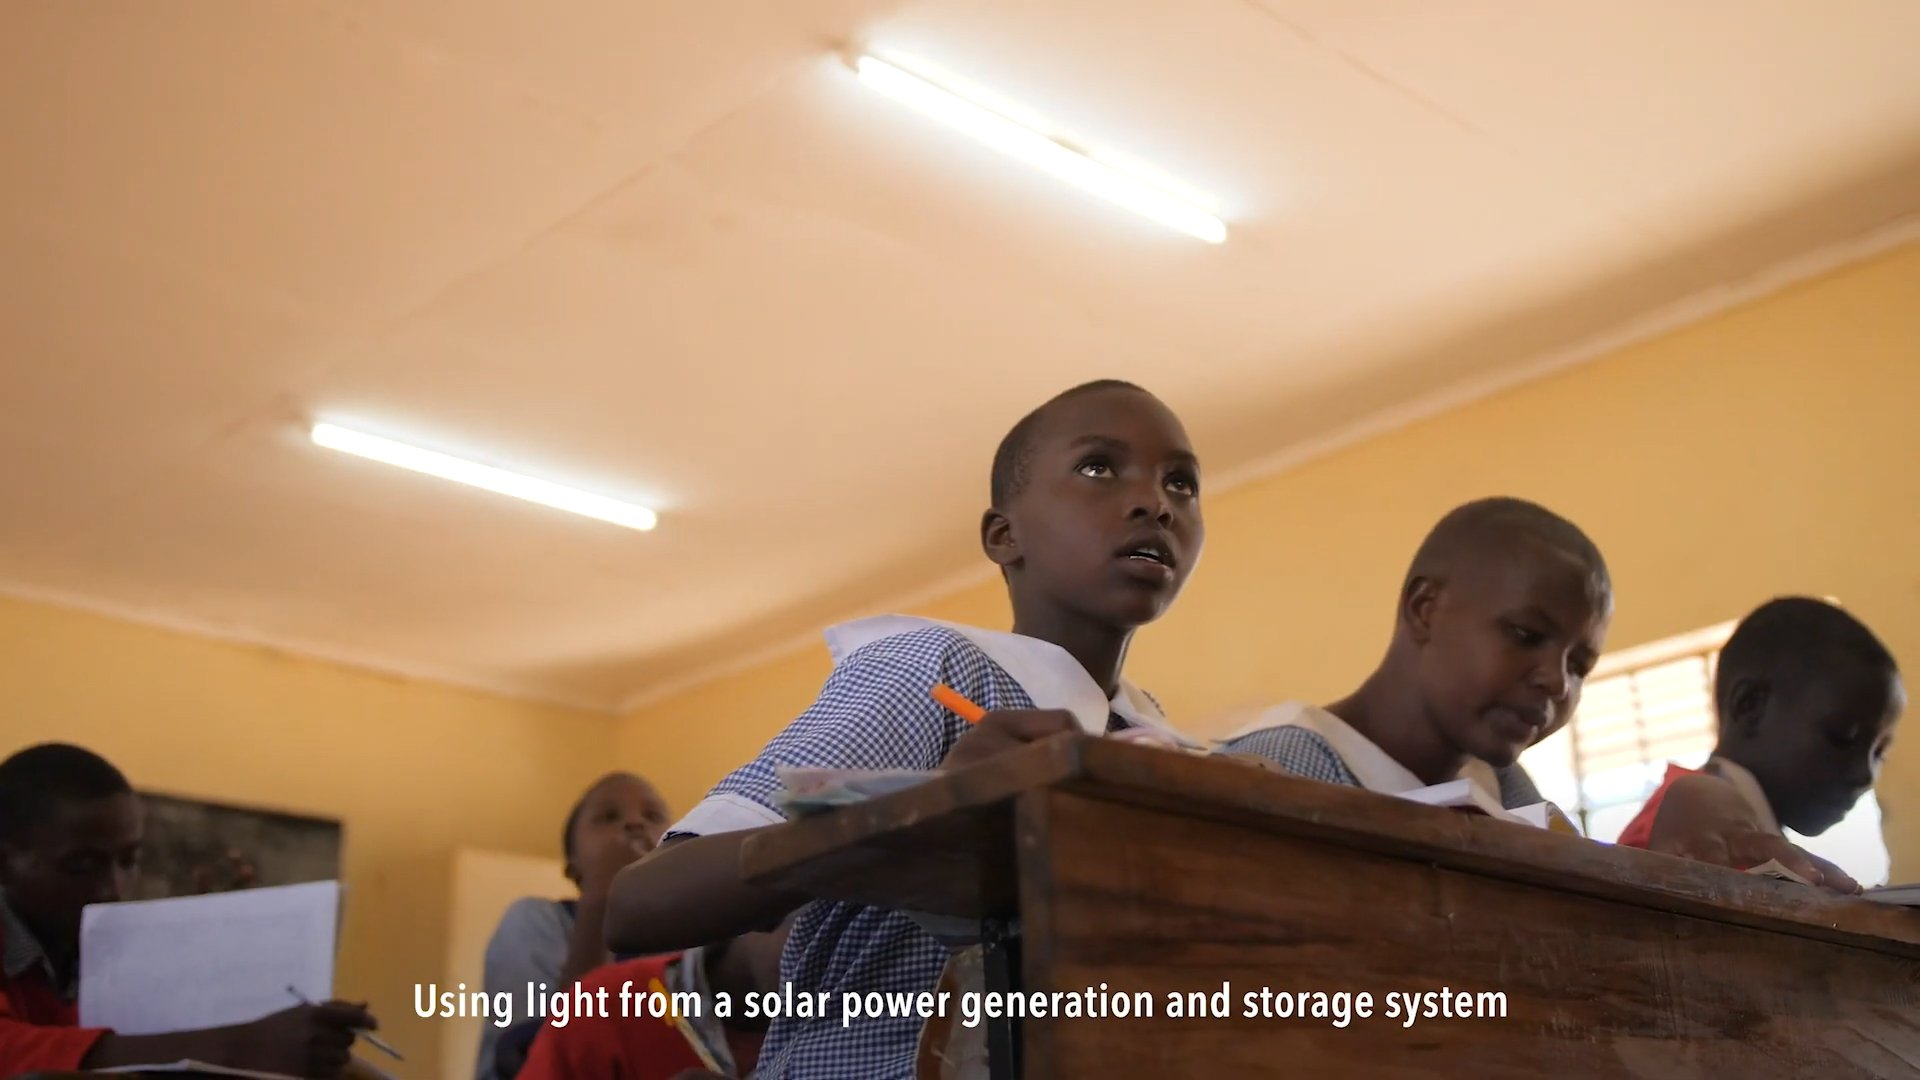 Providing Electricity to Improve the Lives of Kenya's Maasai